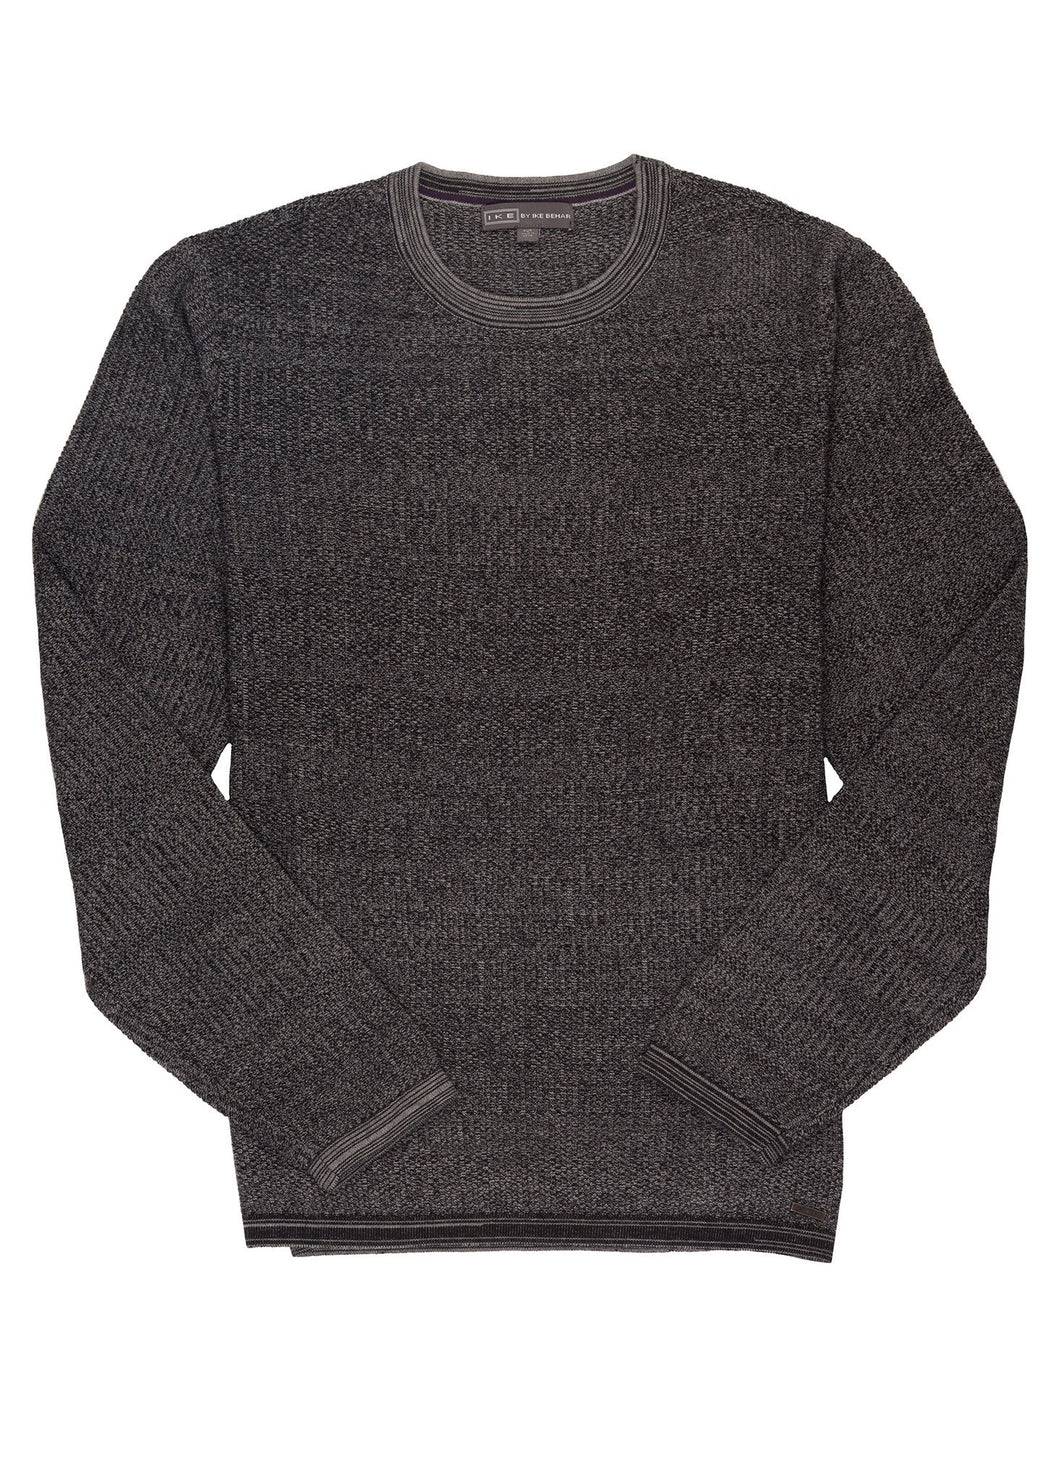 Grey Ike by Ike Behar Cotton Seed Stitched Sweater